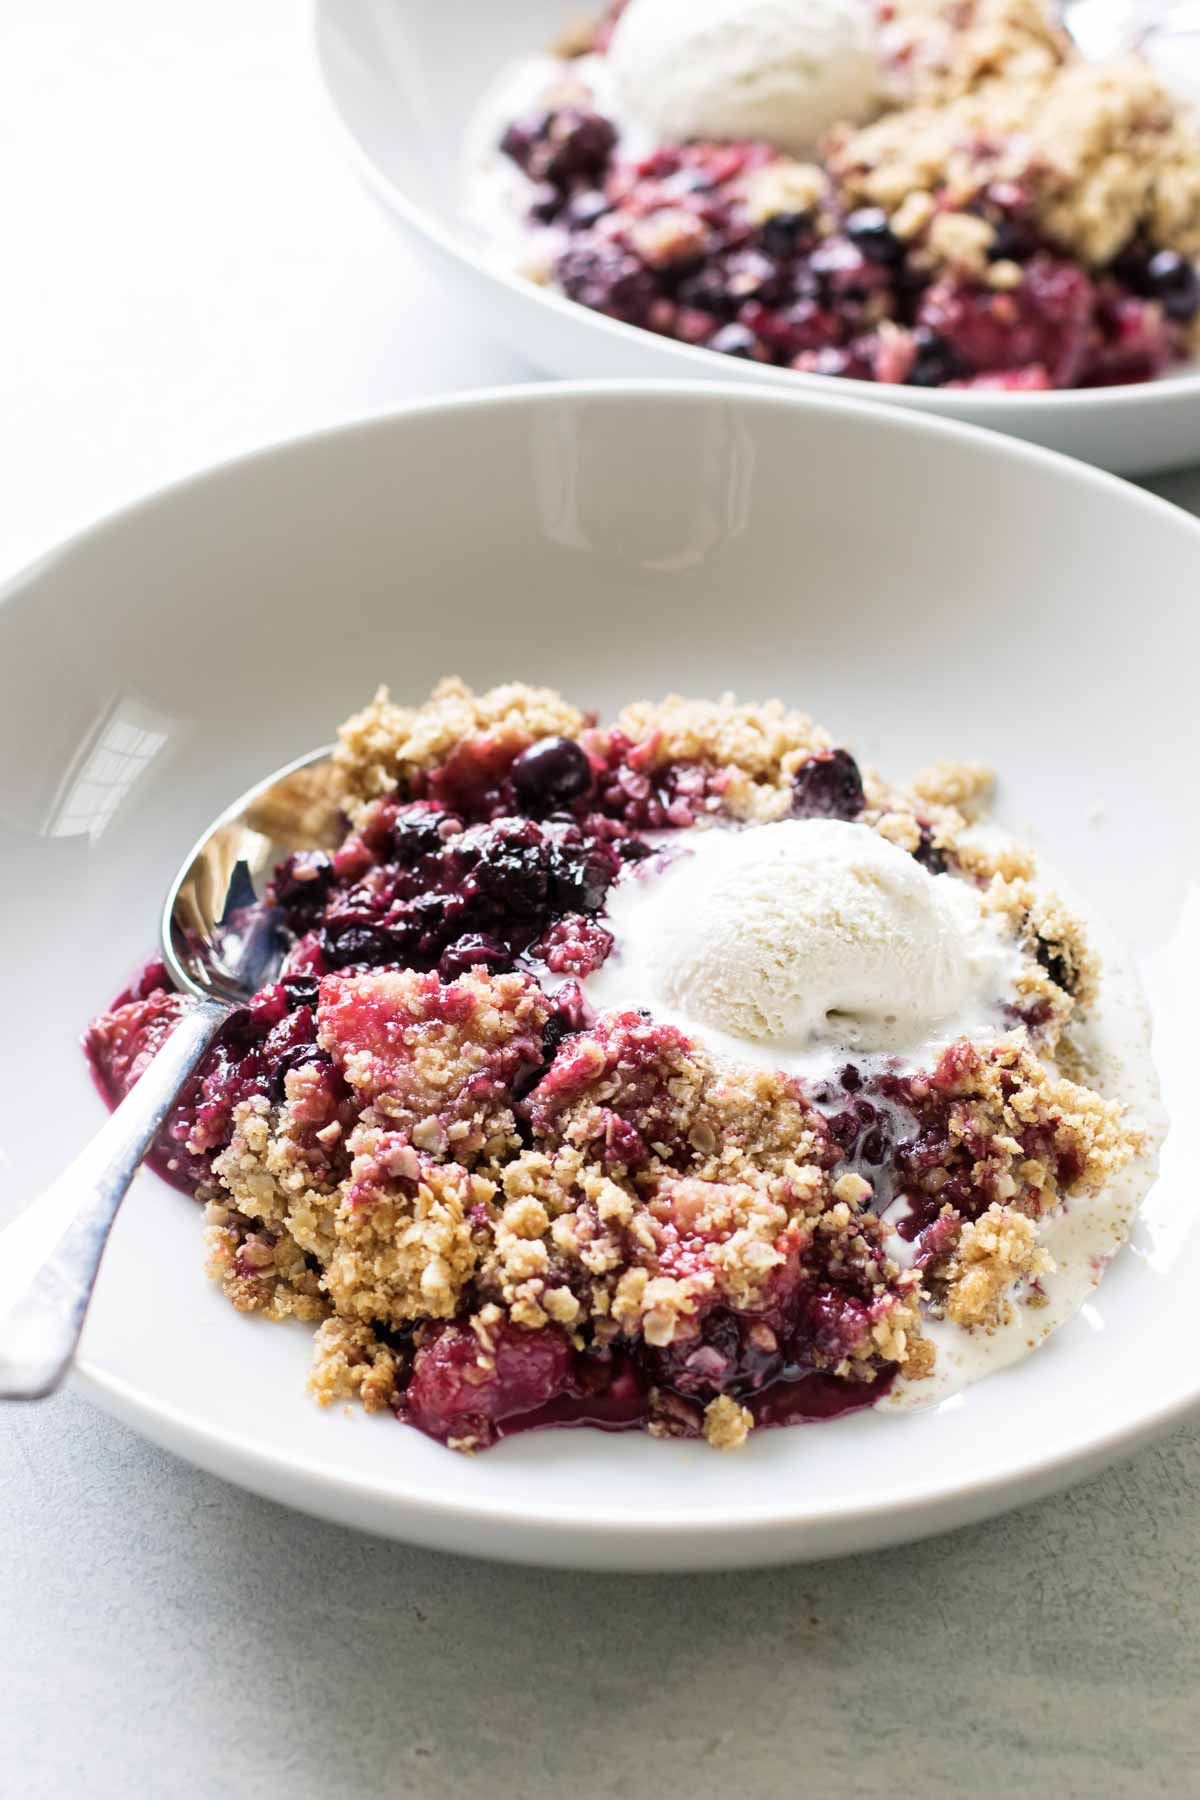 photo of a serving of berry crumble in a bowl with ice cream